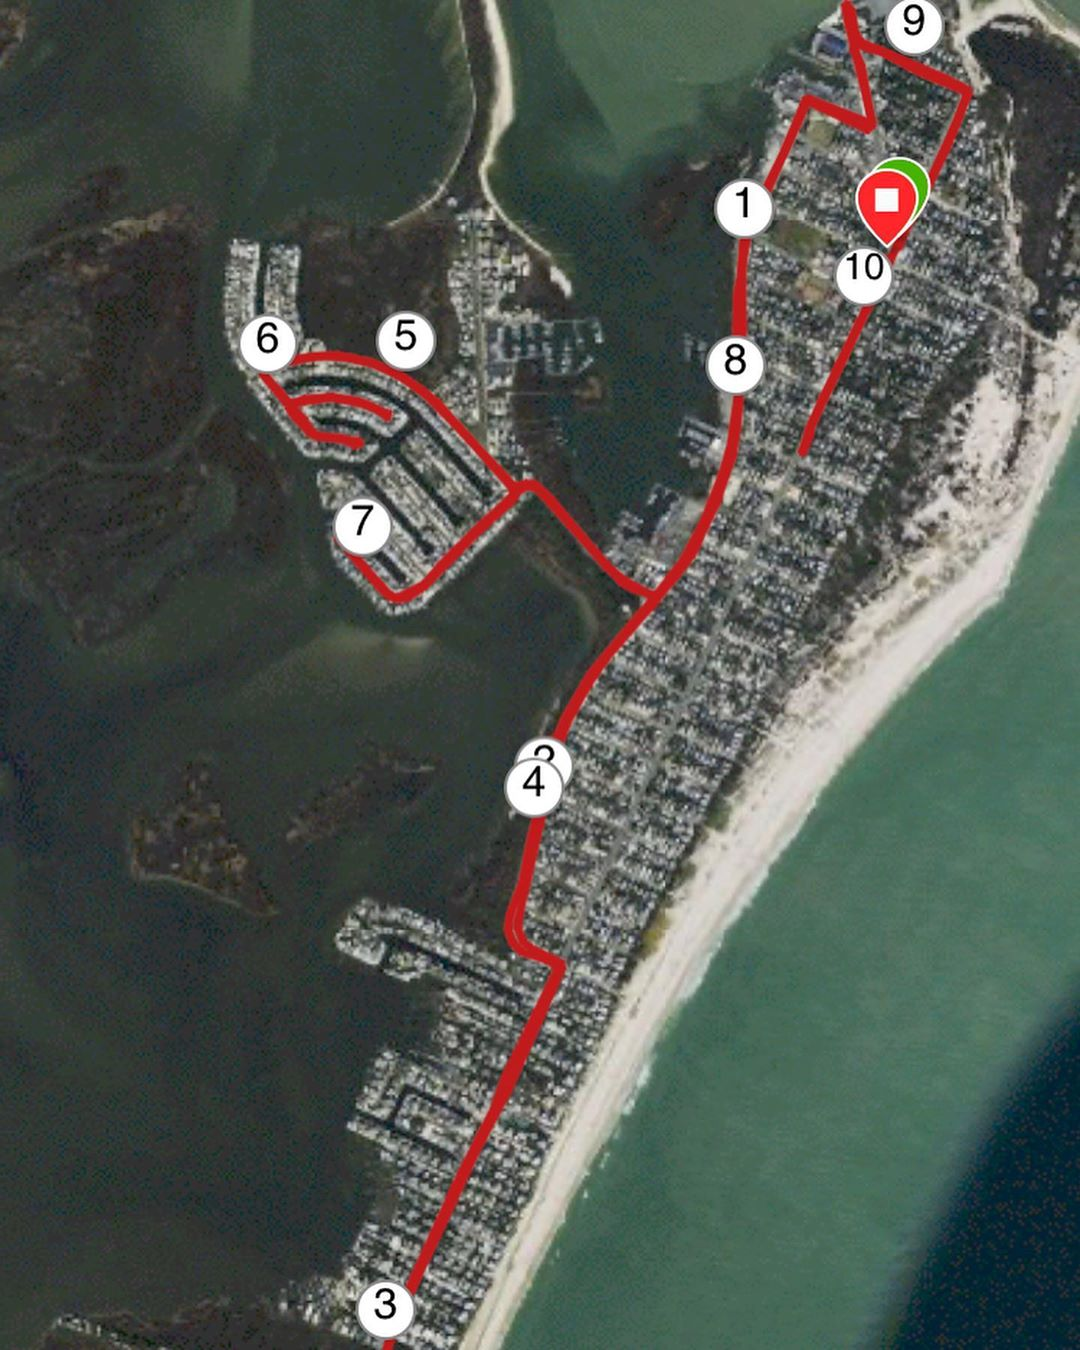 LBI Finished up the week with another lighthouse run! And I made sure to finish stro…